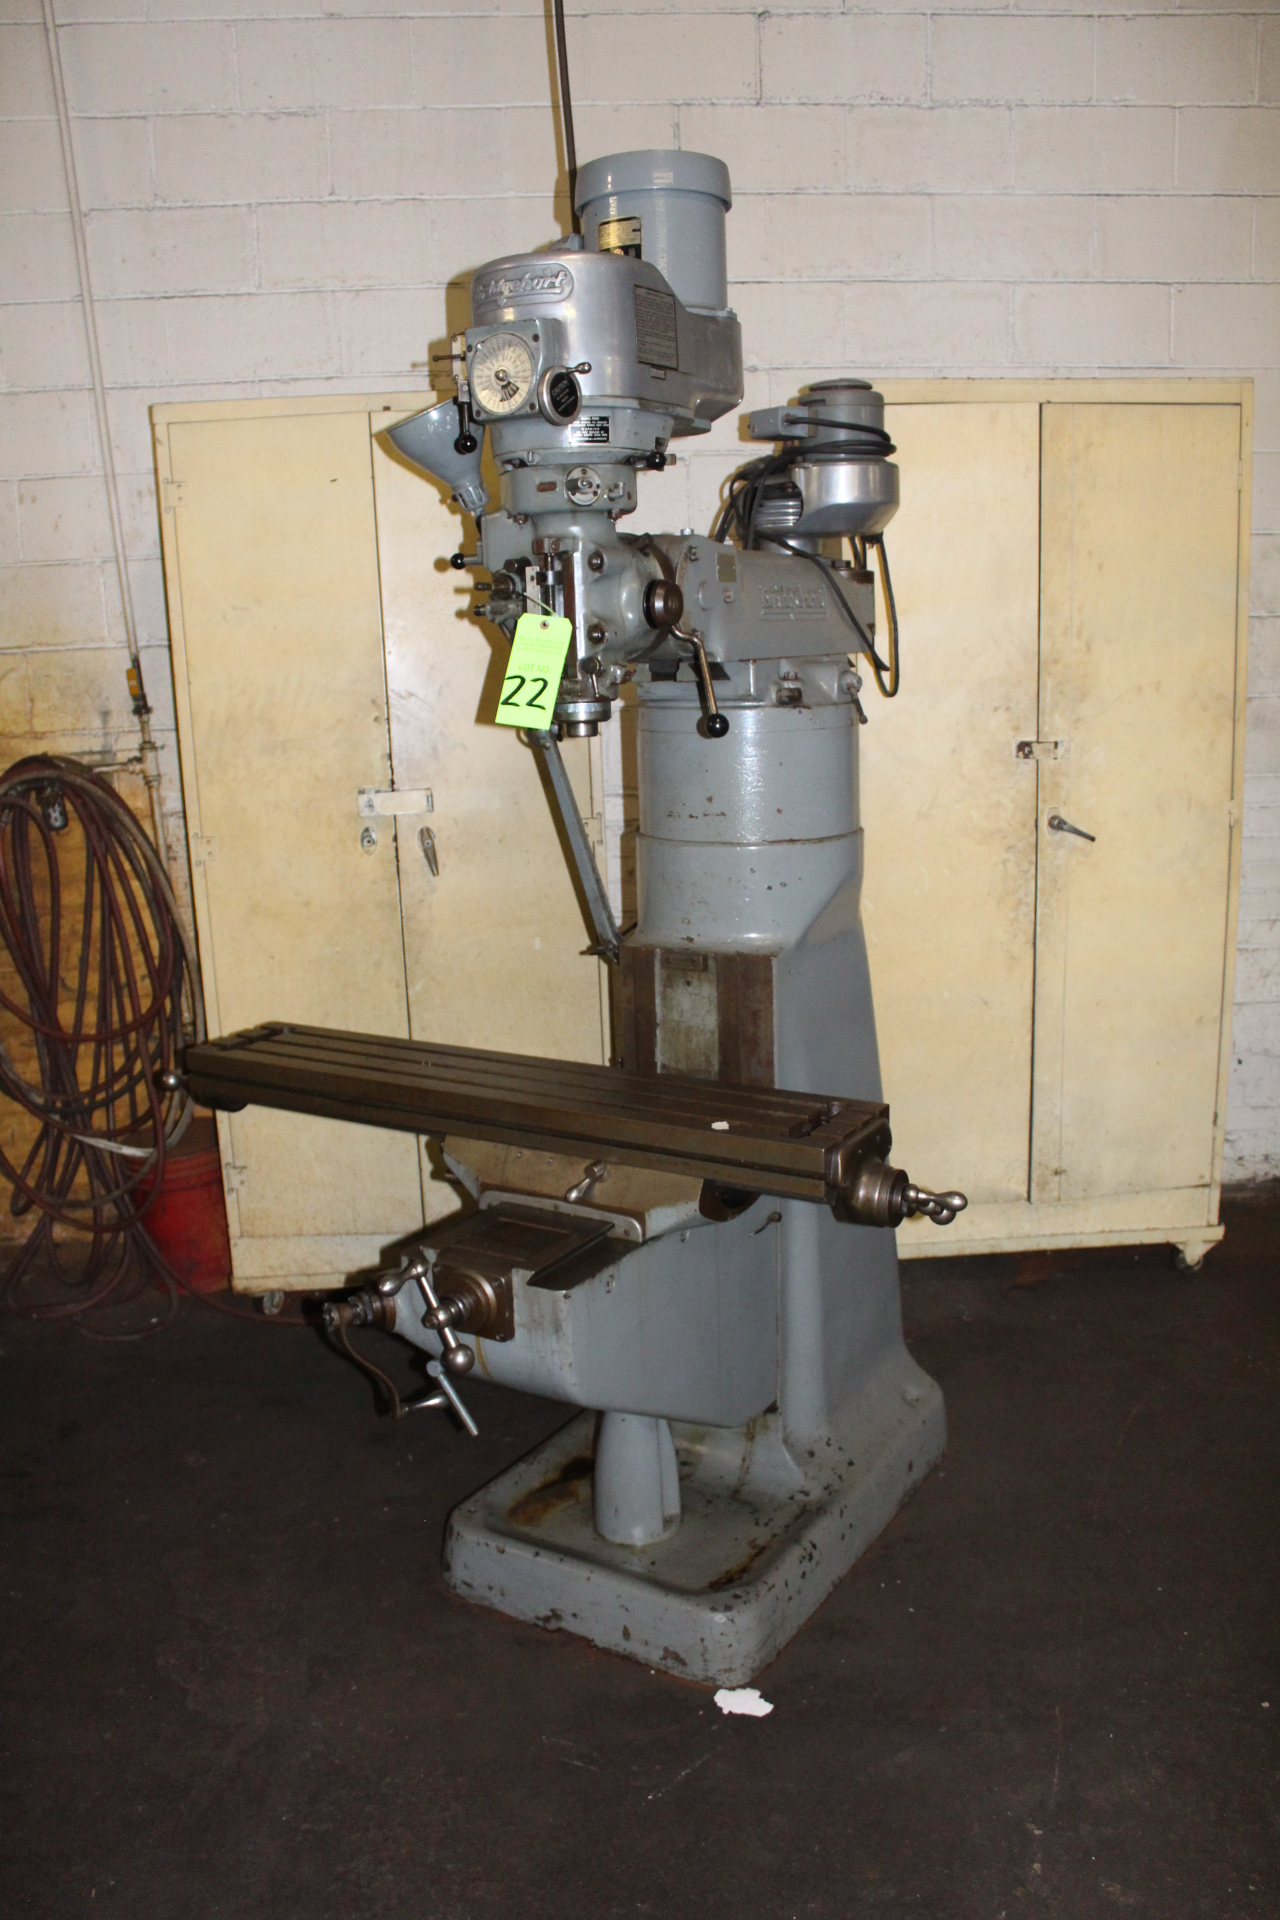 Lot 22 - Bridgeport 1-1/2 Hp Variable Speed Vertical Milling Machine